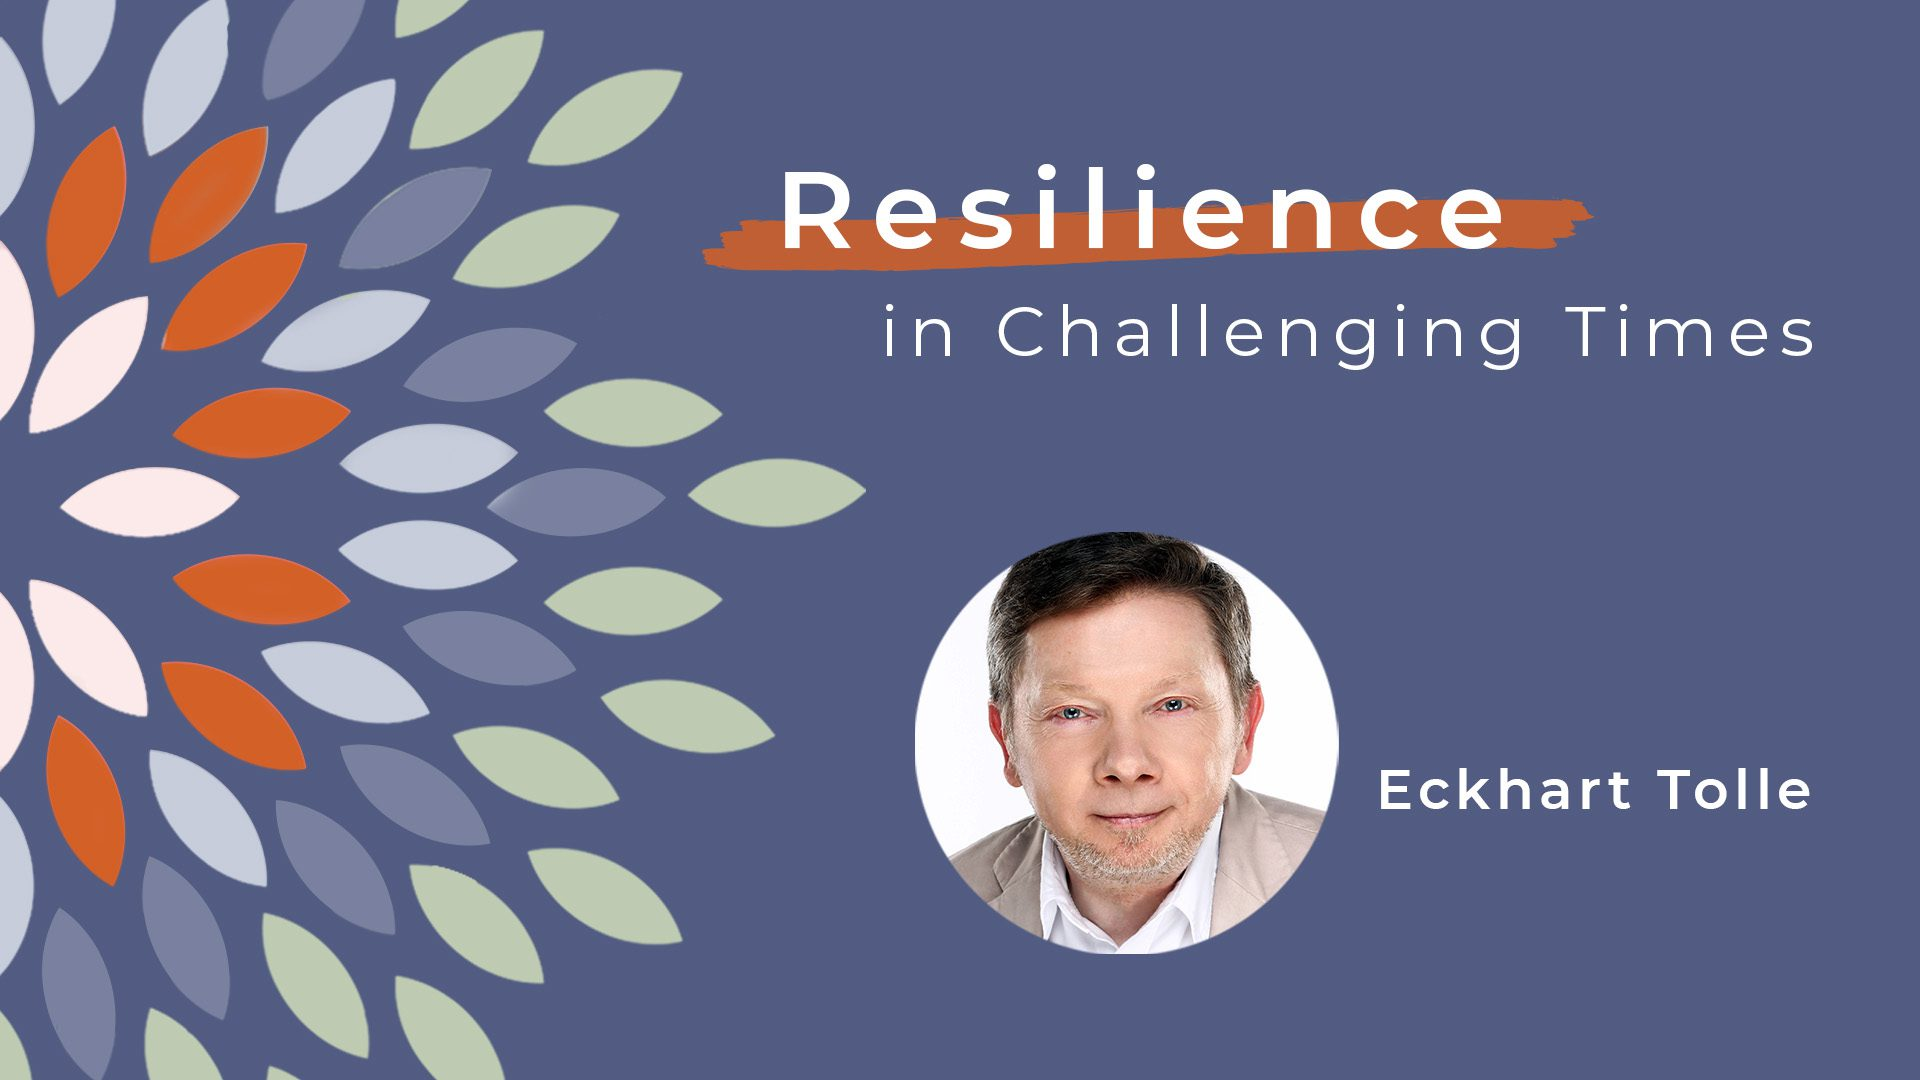 Resiliece-video-eckhart-tolle-title-card